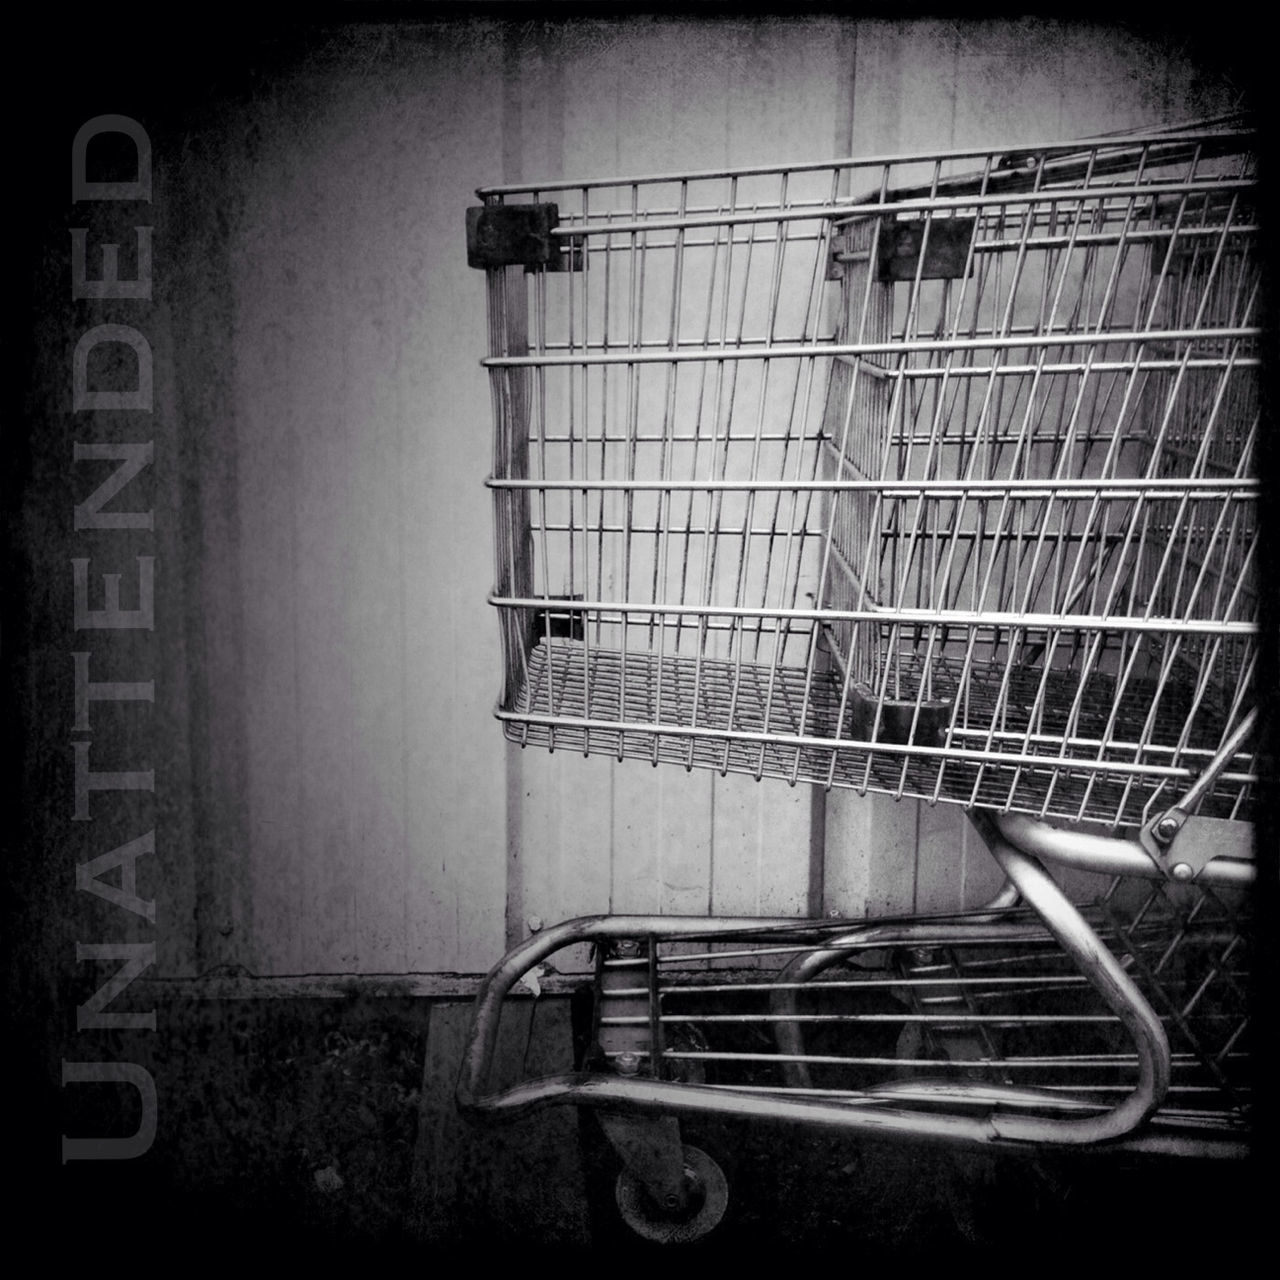 no people, indoors, shopping cart, day, close-up